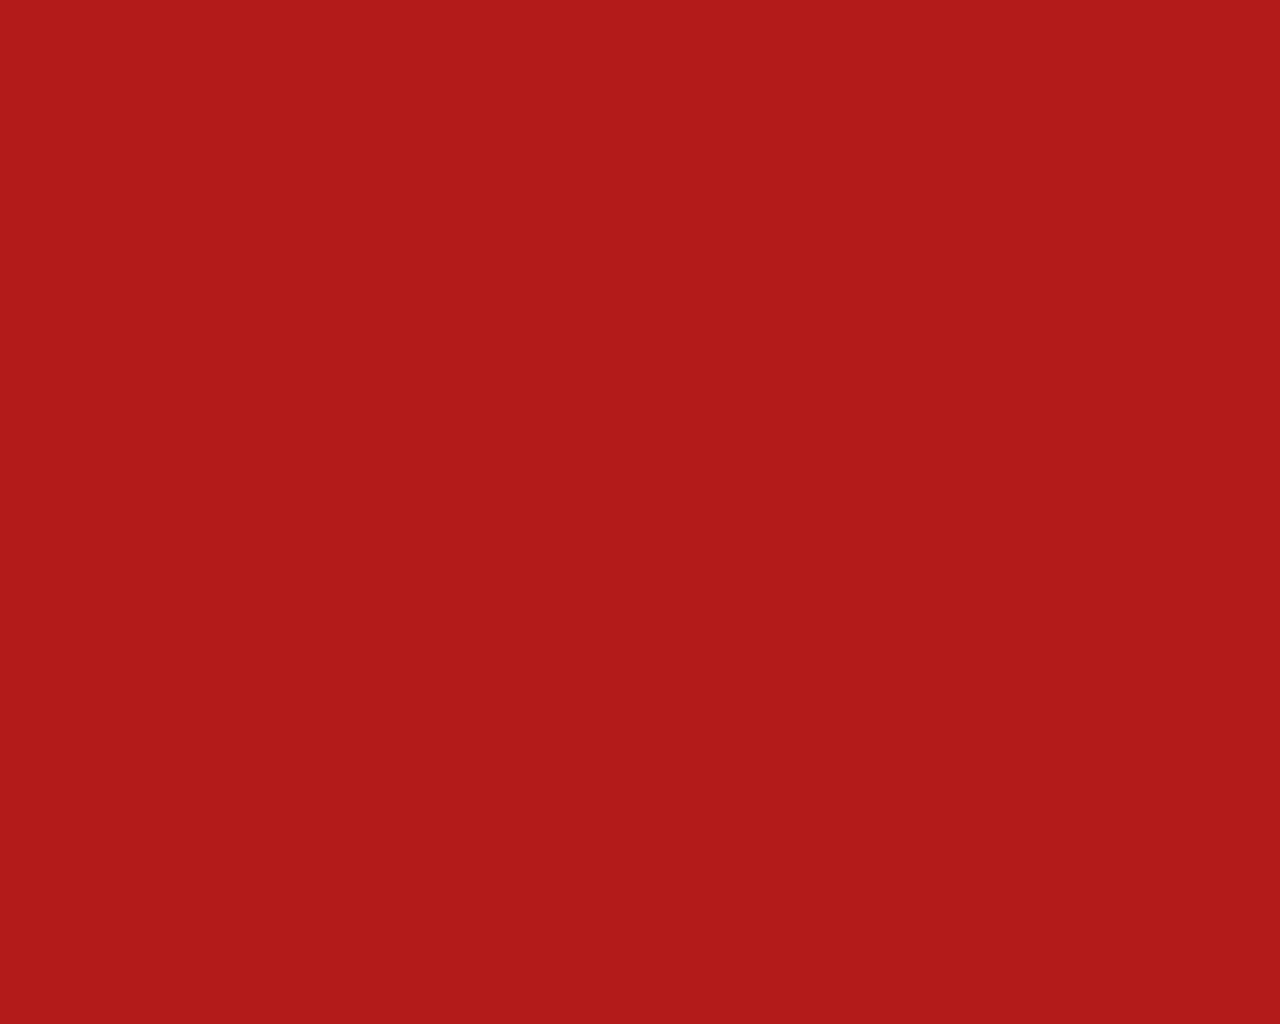 1280x1024 Cornell Red Solid Color Background